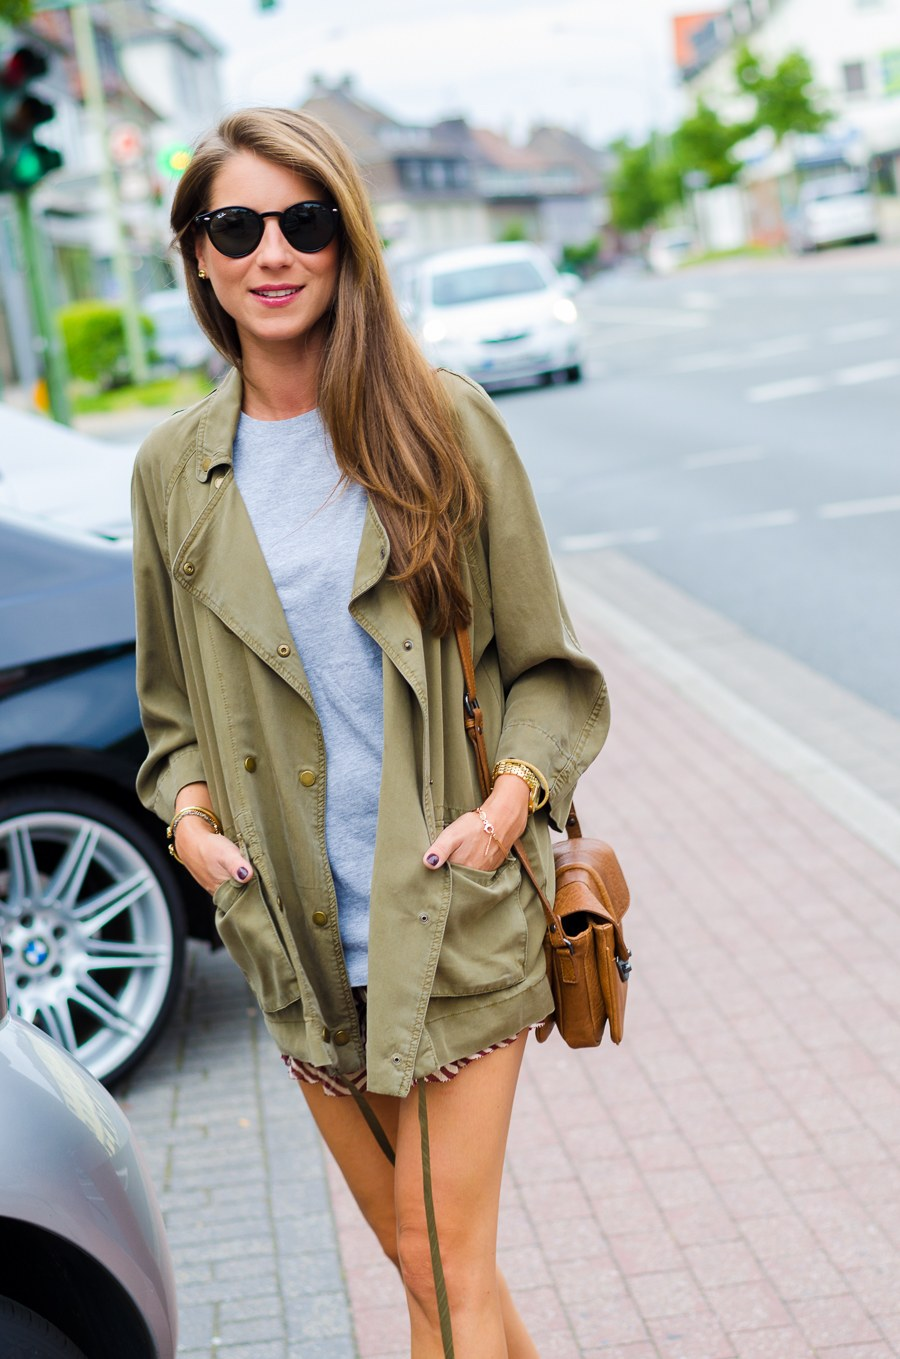 OUTFIT: LIGHT MILITARY JACKET, BOYFRIEND SHIRT & A RUFFLED SILK SKIRT